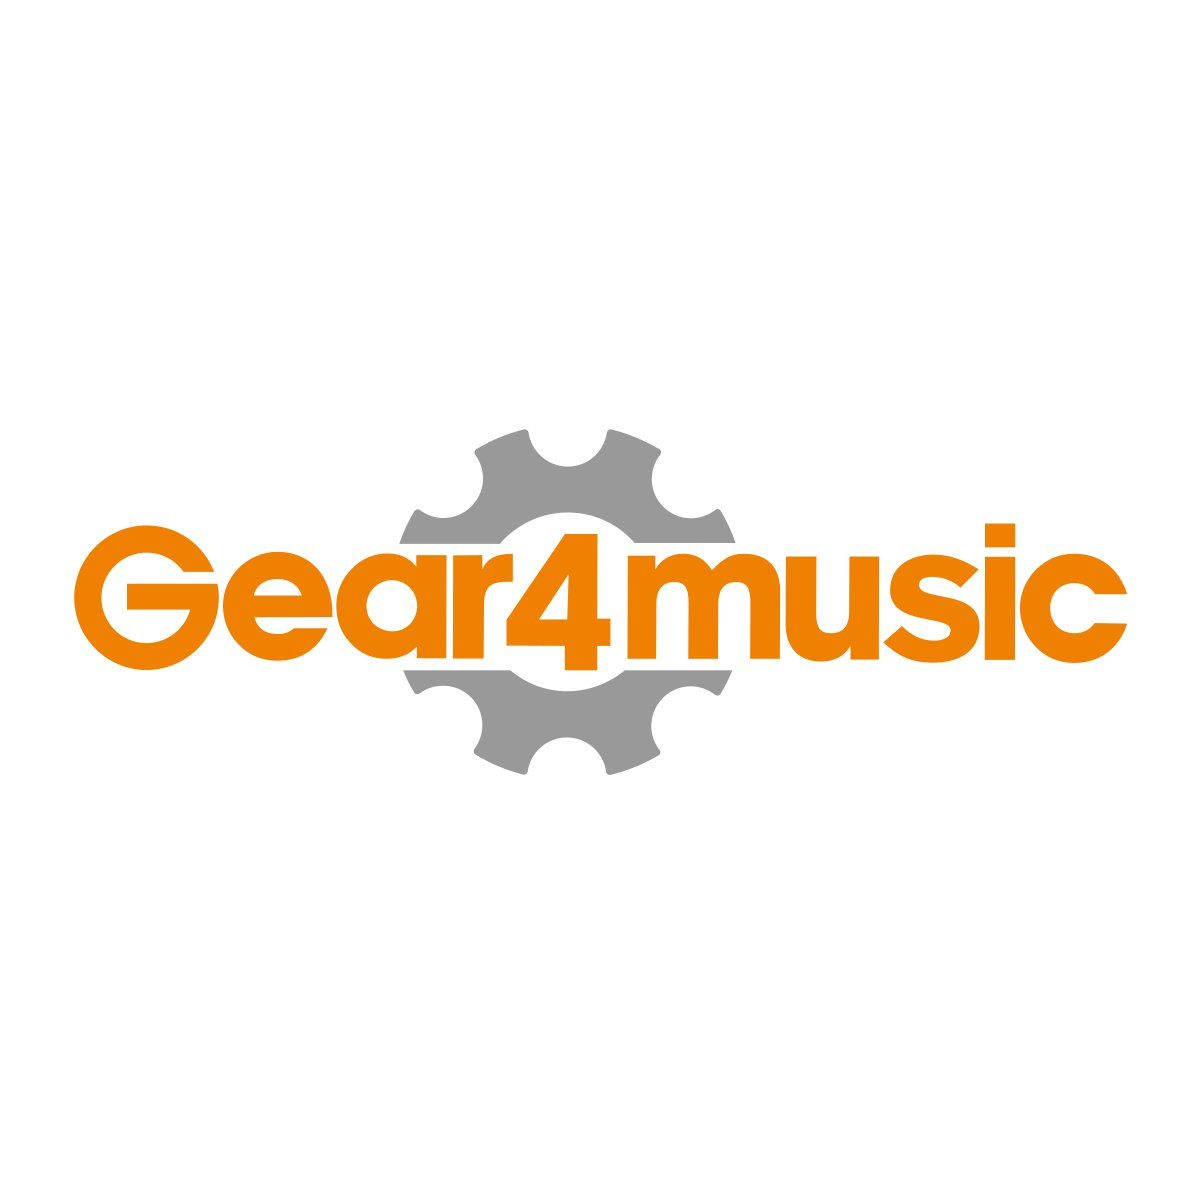 SDP-2 Pianoforte da palco by Gear4music + Kit completo, bianco